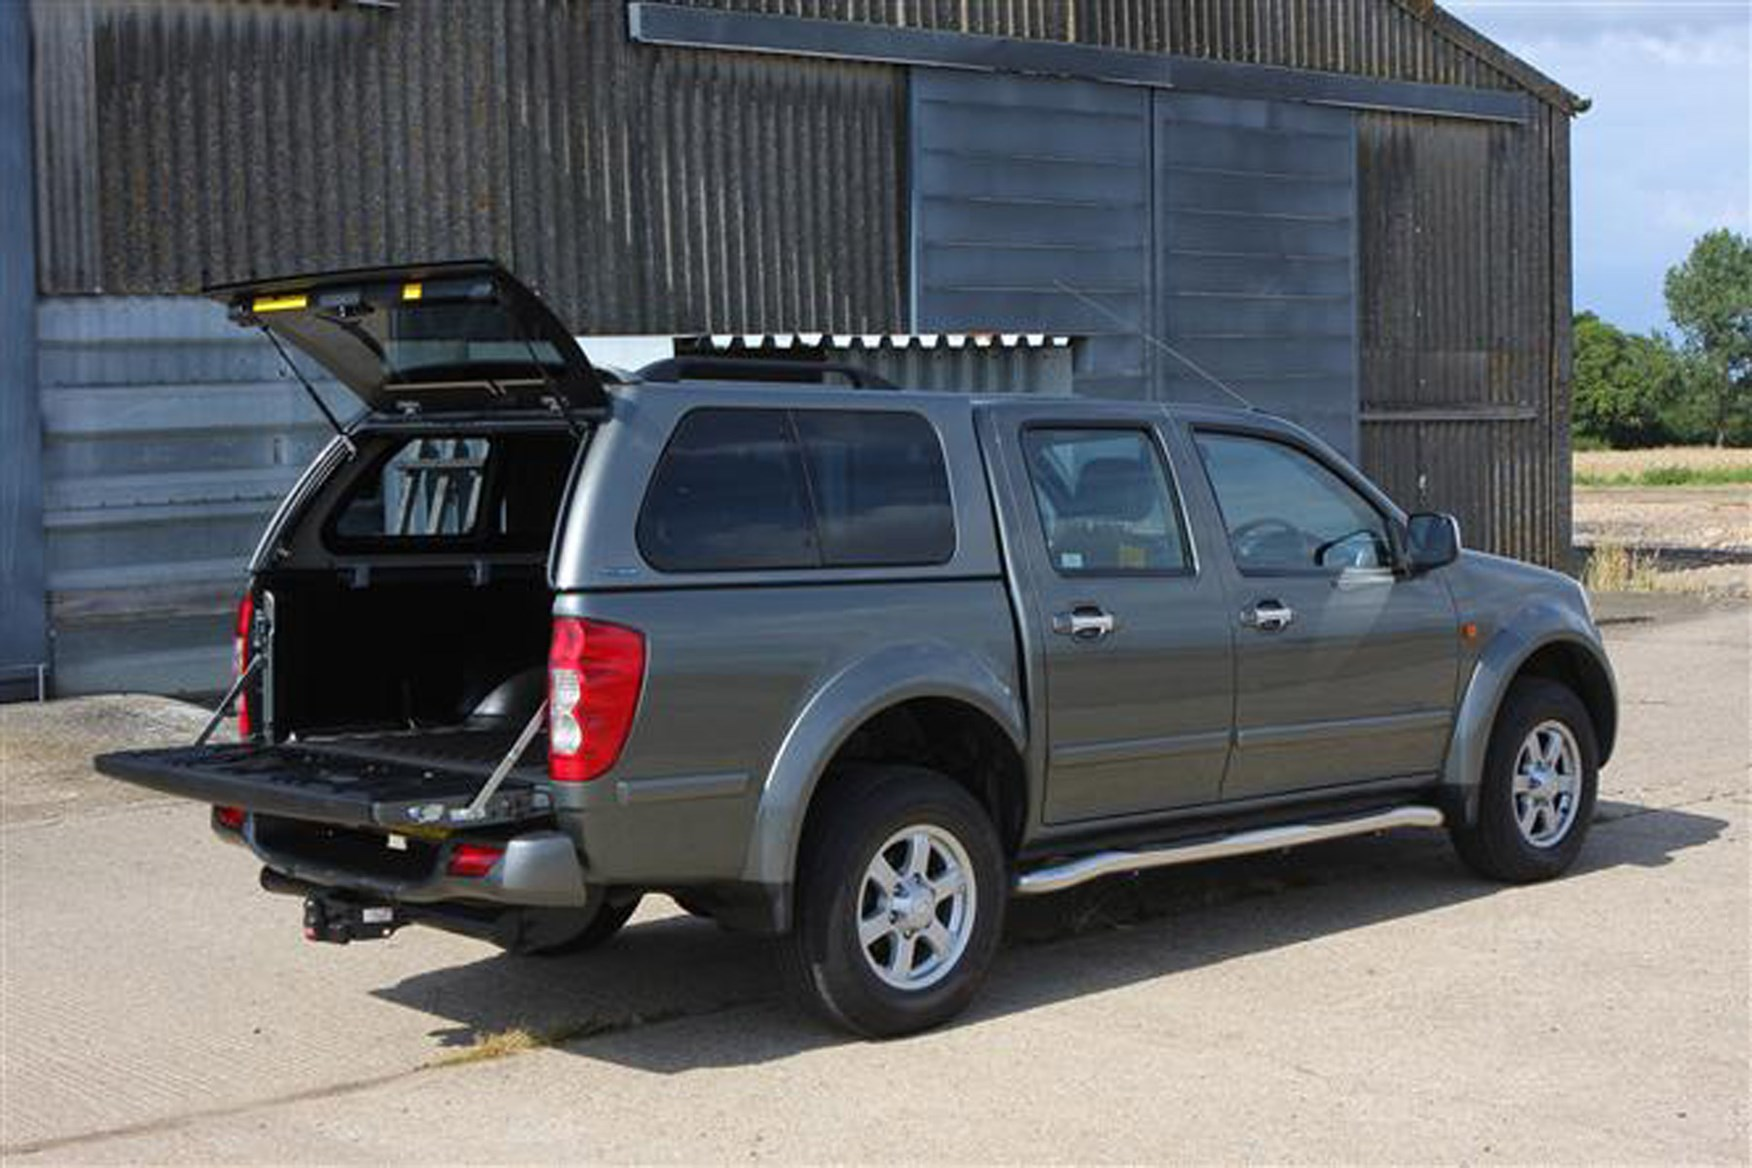 Great Wall Steed full review on Parkers Vans - load area capacity